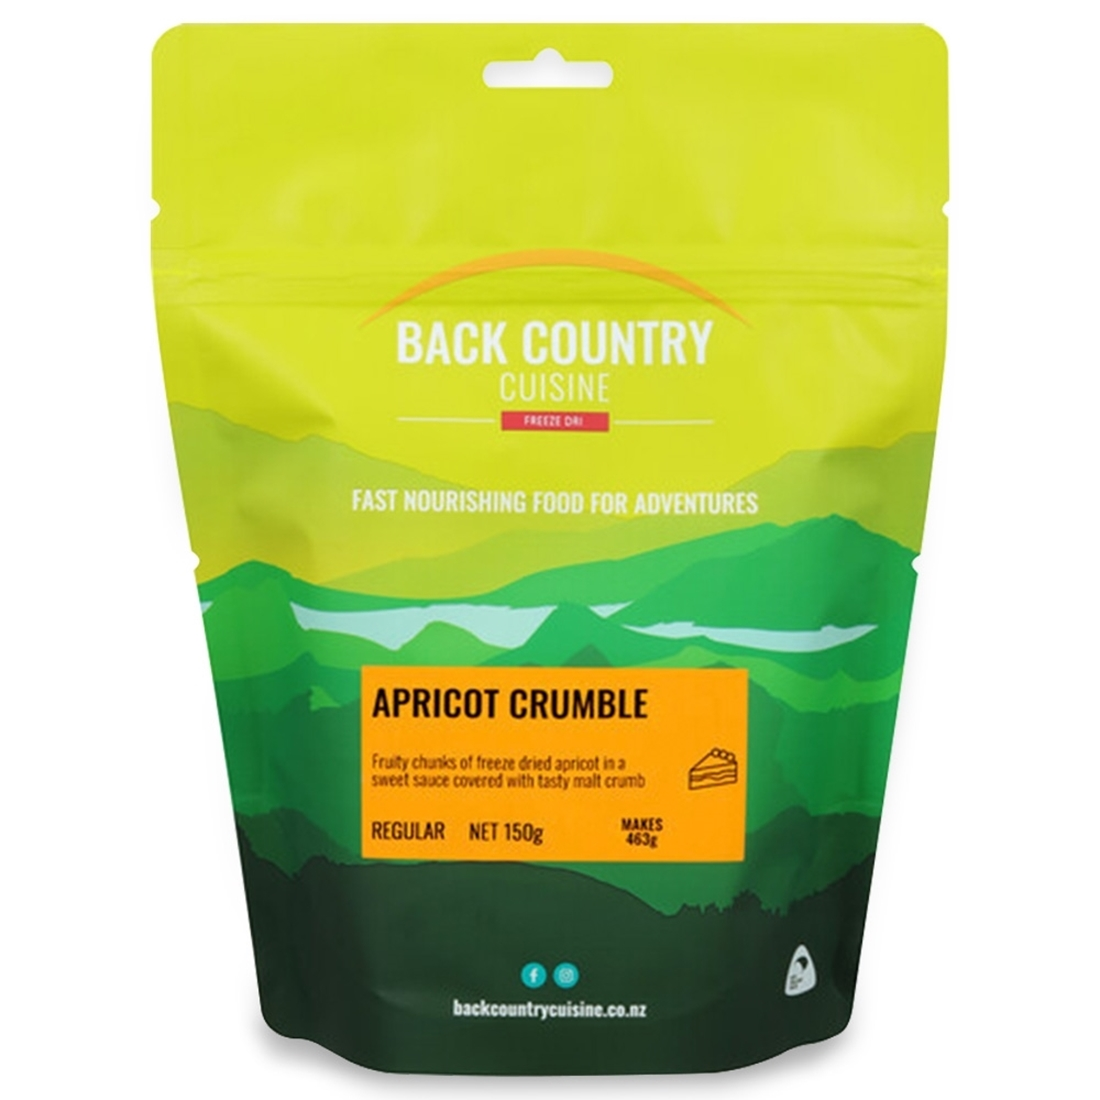 Back Country Cuisine Apricot Crumble 150g